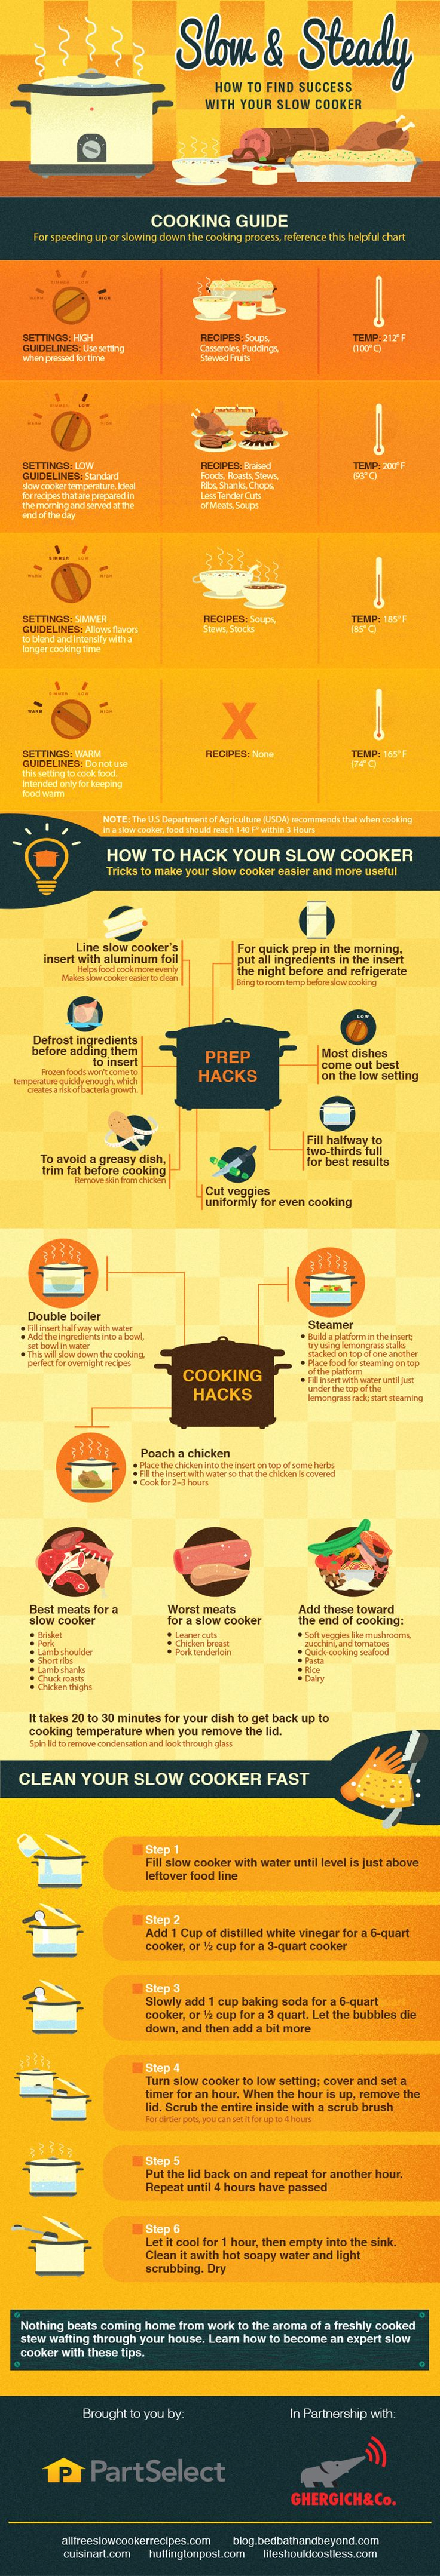 Awesome Slow Cooker Hacks (How To Use and Clean Your Crockpot) A great crock pot guide for newbies and pros! Learn how to use your slowcooker the way it's MEANT to be used!